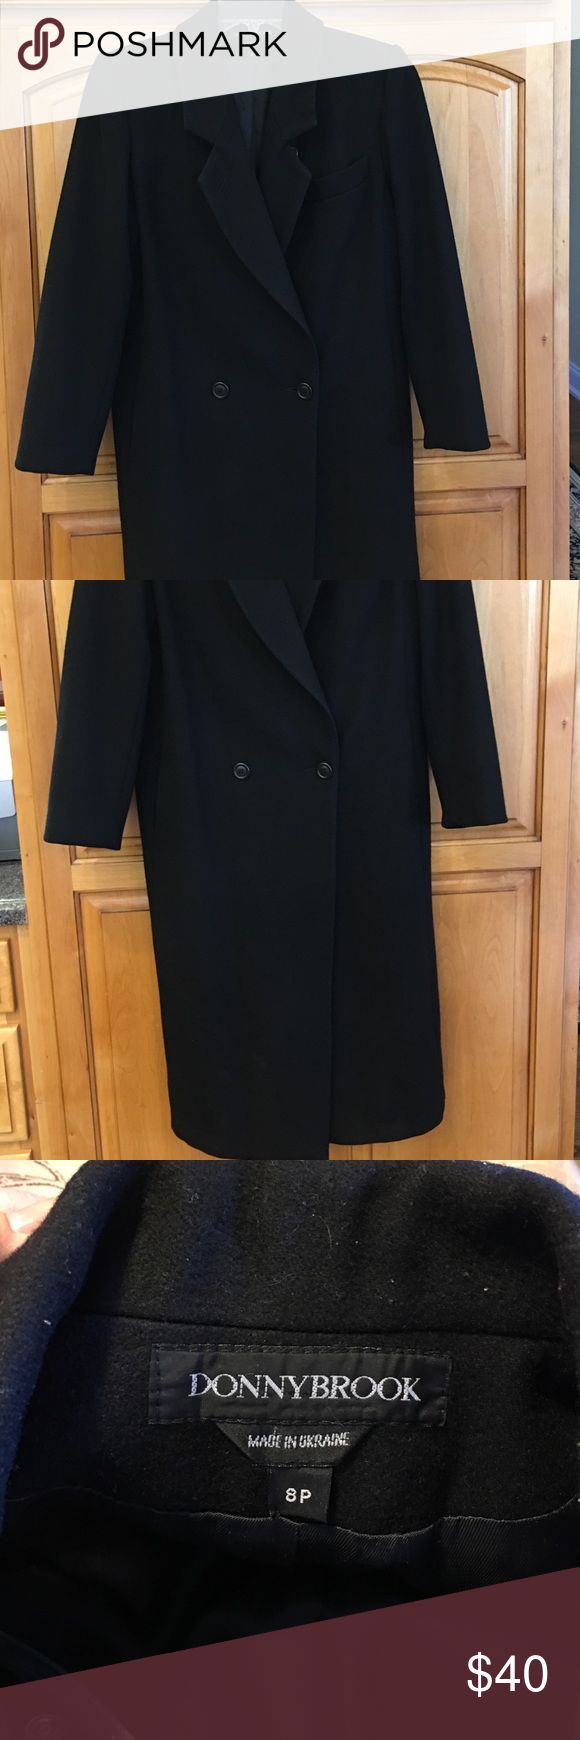 """Wool Winter Coat, Black, Elegant Size 8 petite- for the lady who is less than 5'4"""". Black wool, black lined, 2 pocket, 45"""" long, 20"""" wide at the waist when buttoned Donny Brook Jackets & Coats Trench Coats"""